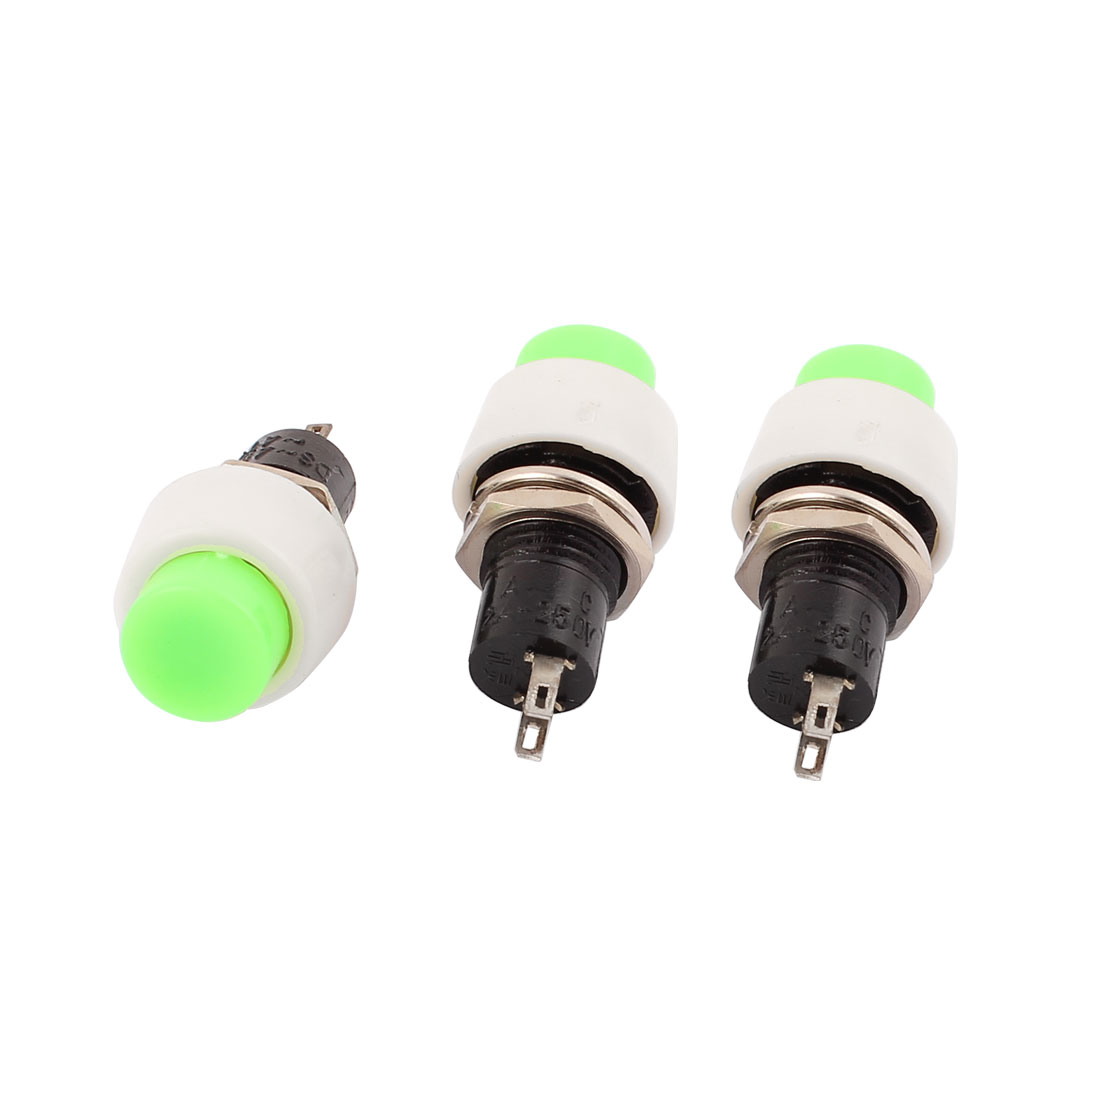 3 Pcs AC250V 2A Panel Mounted SPST Latching Plastic Push Button Switch Green